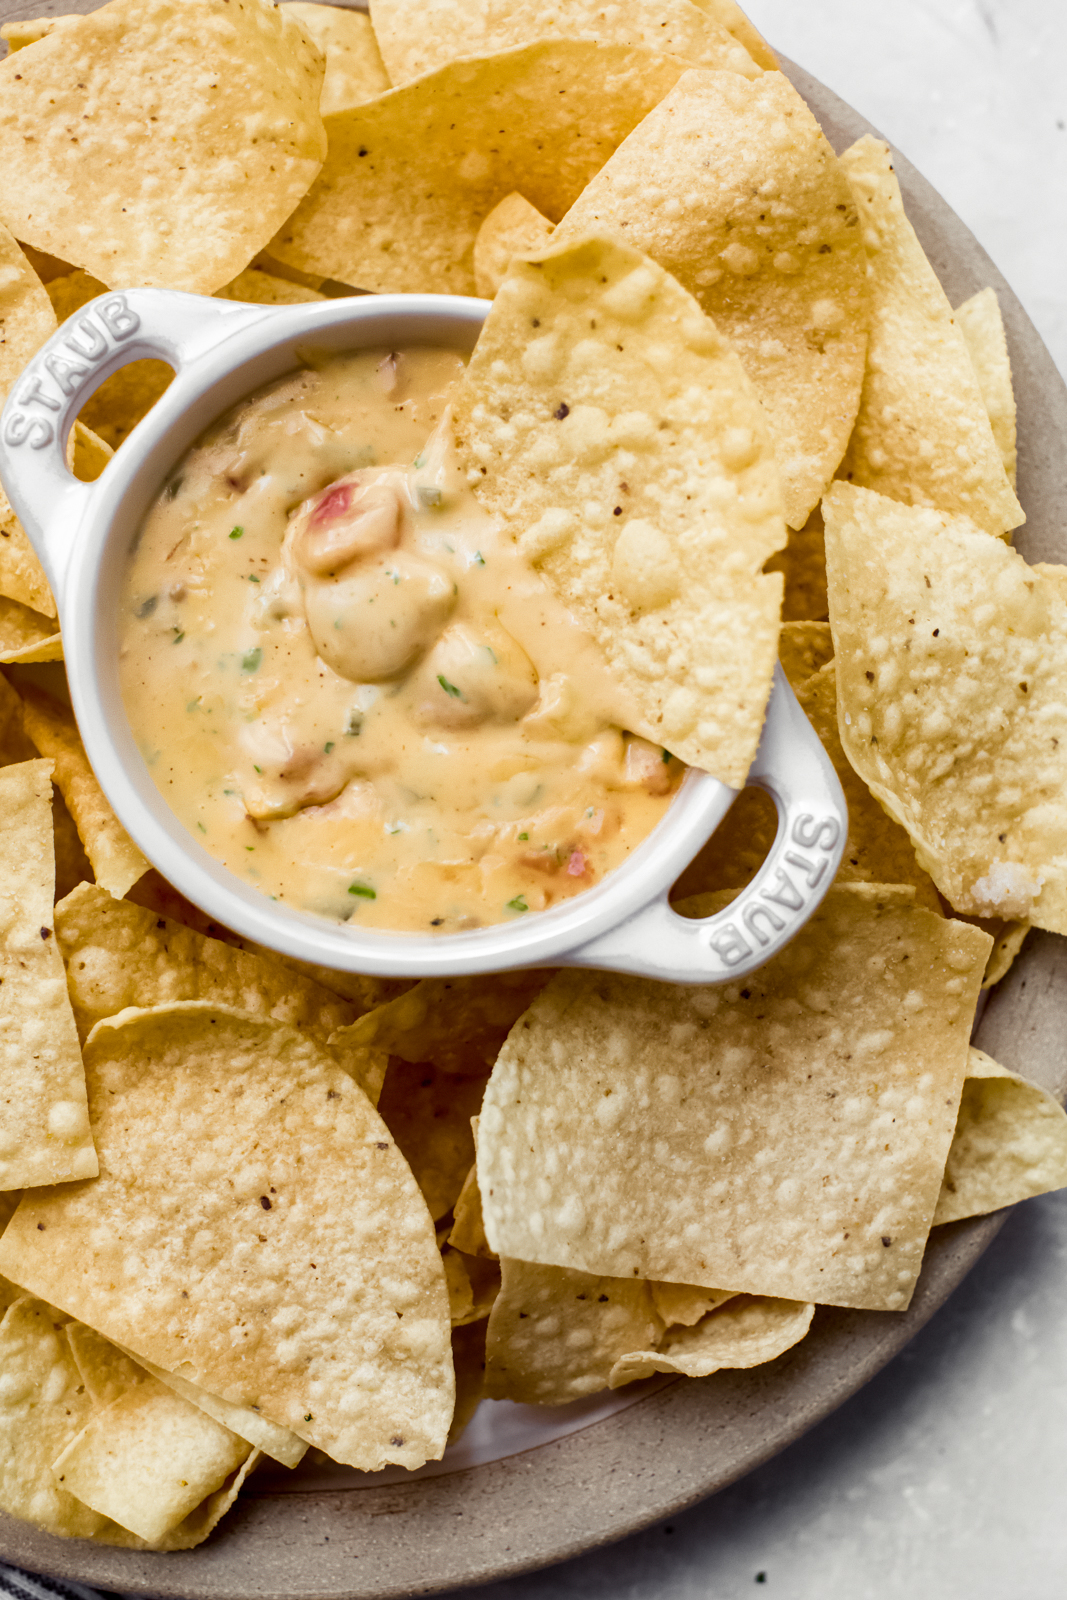 warm bowl with queso with a chip resting on the bowl